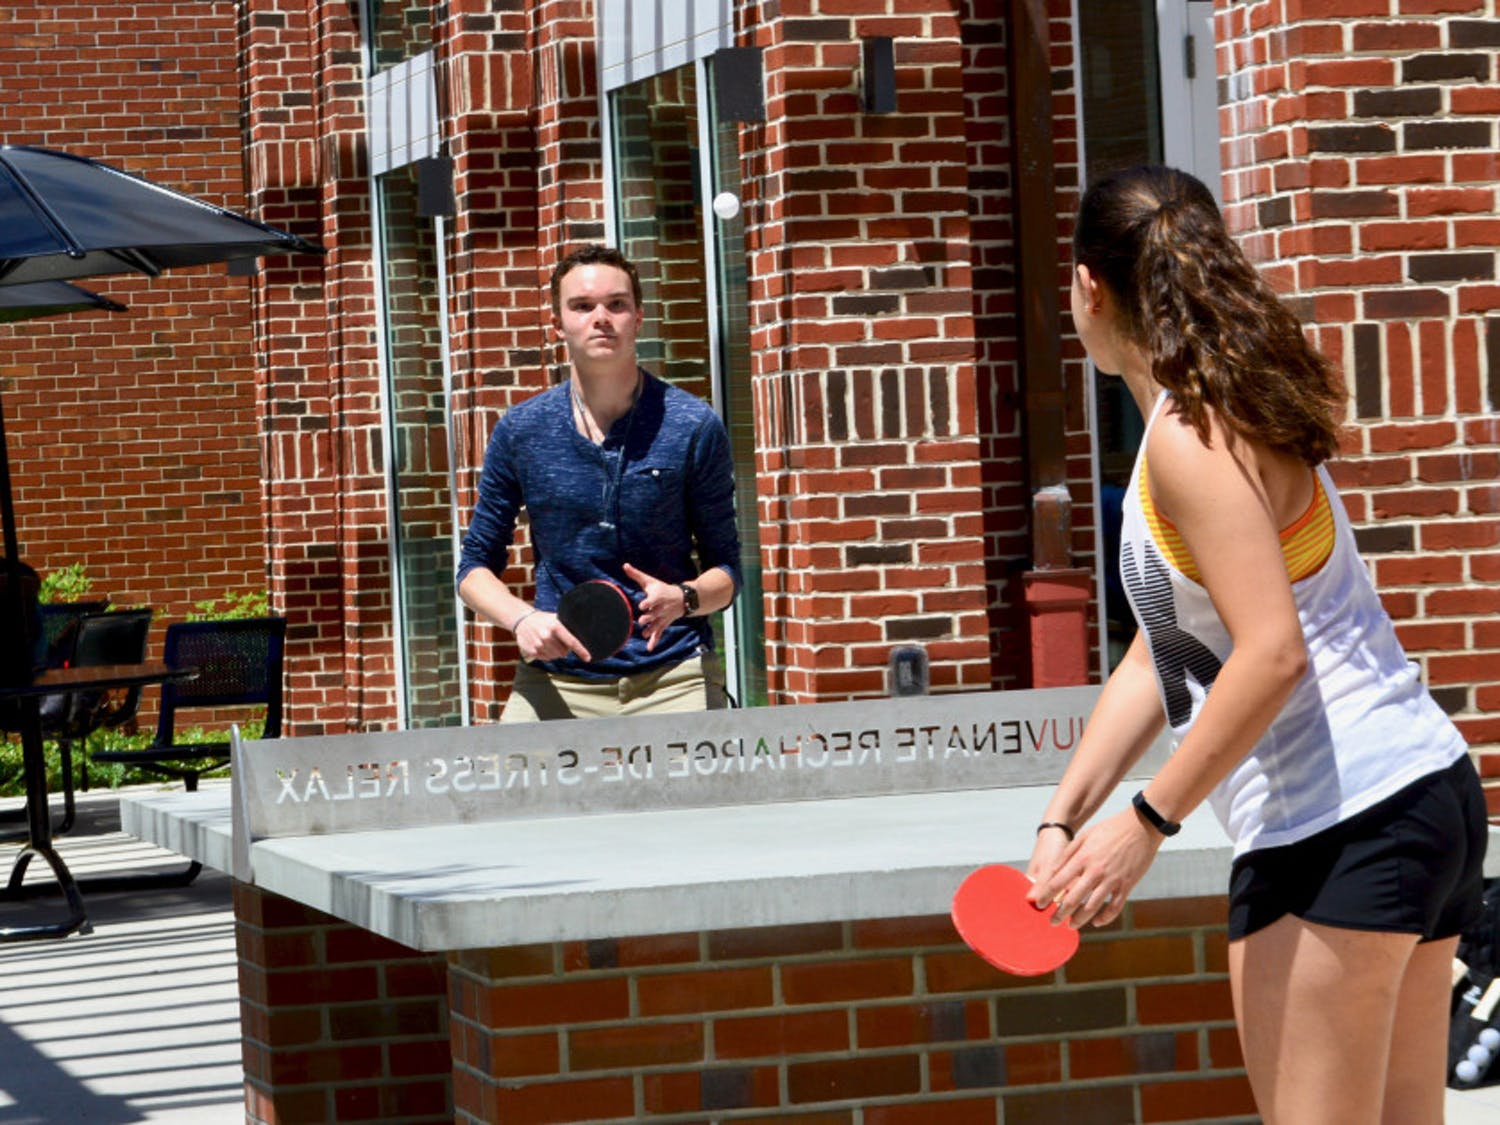 Andrew Schuffer, an 18-year-old neurobiological sciences freshman, plays ping pong outside Newell Hall Tuesday afternoon with Ariana Johnson, a 19-year-old microbiology and cell science freshman as part of the Newell Hall Block Party which marked the one year anniversary of the building's reopening.